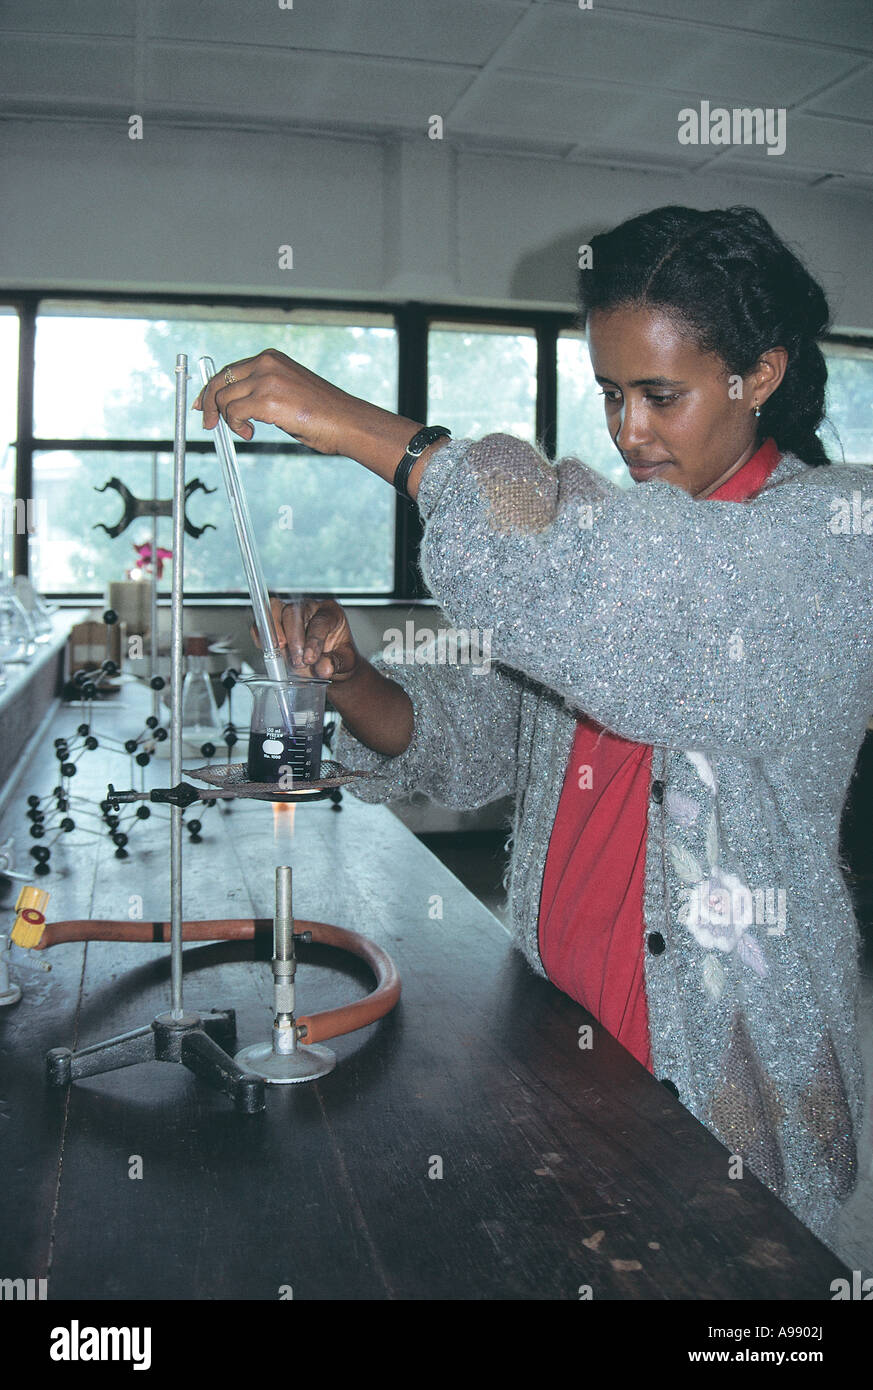 Woman Student in chemistry labs at University of Addis Ababa Ethiopia - Stock Image